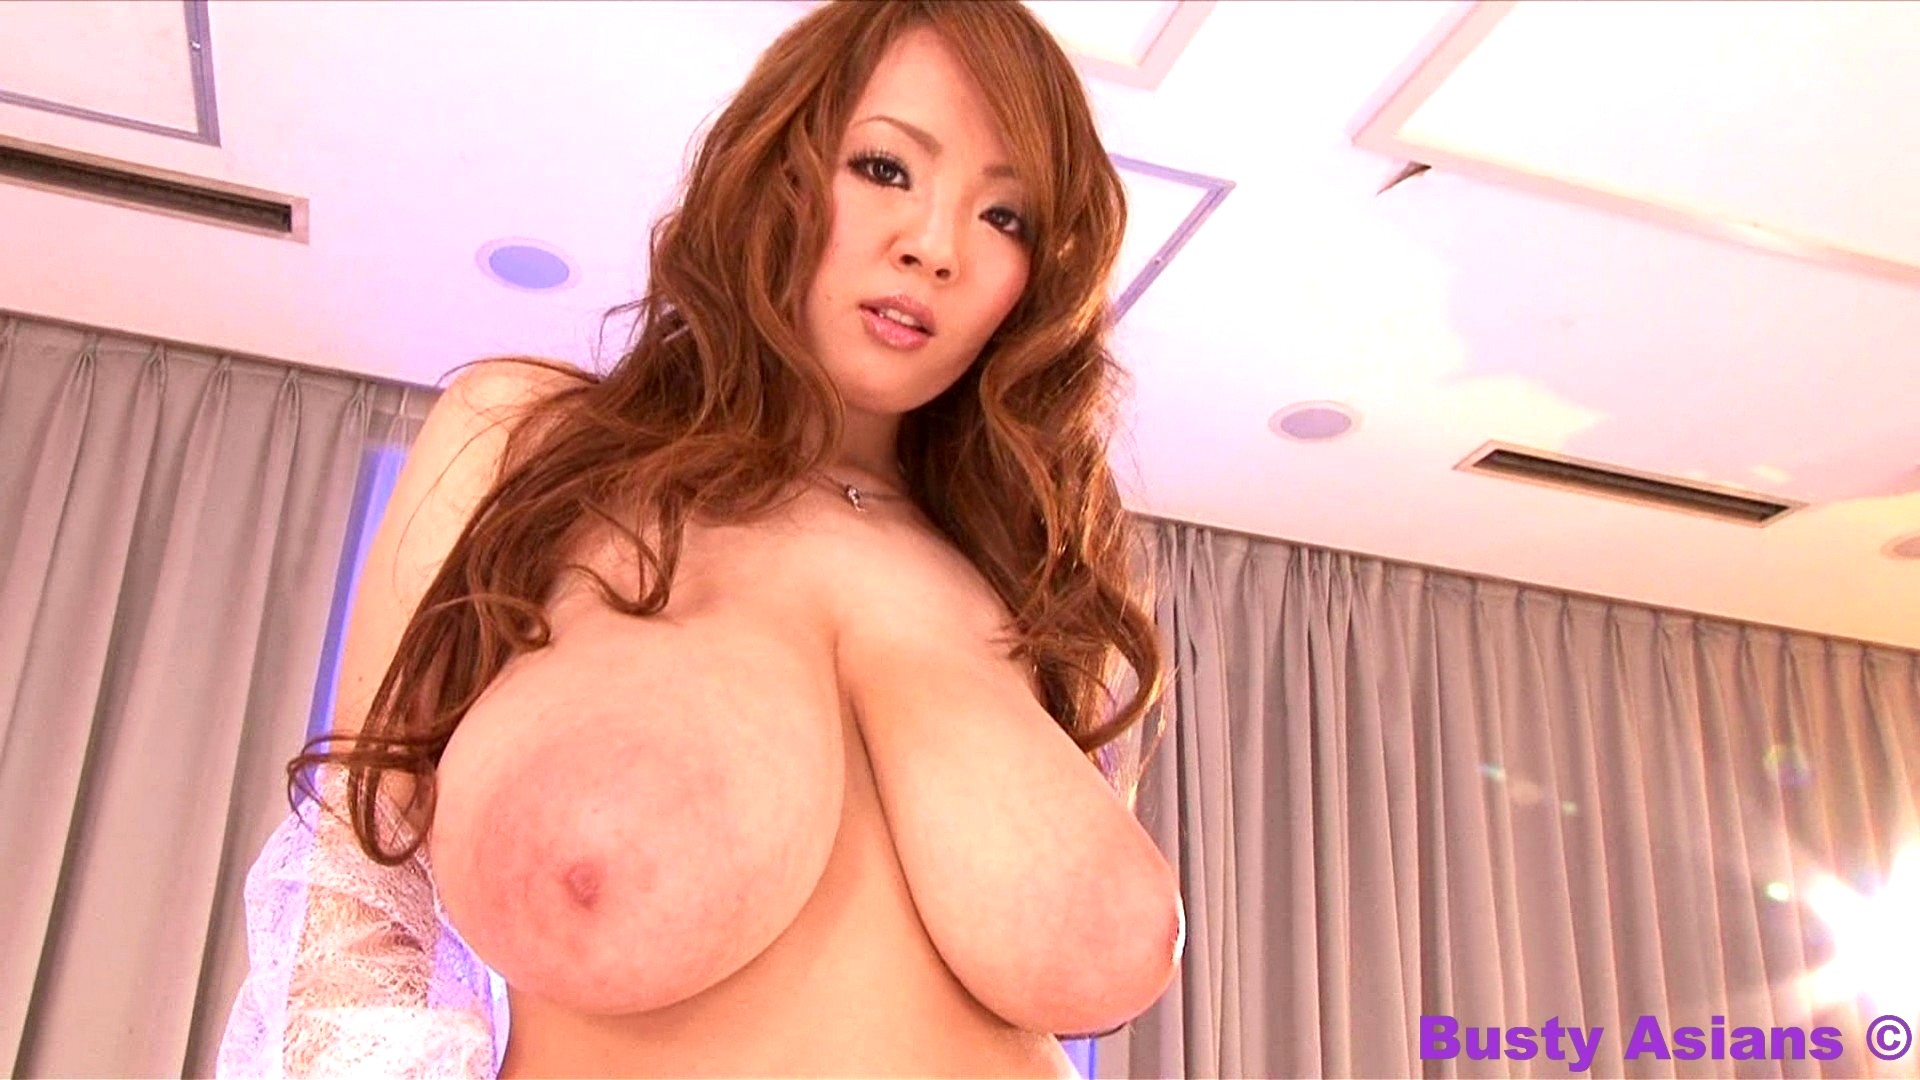 Giant huge tit asian pornstar, demise milani striper